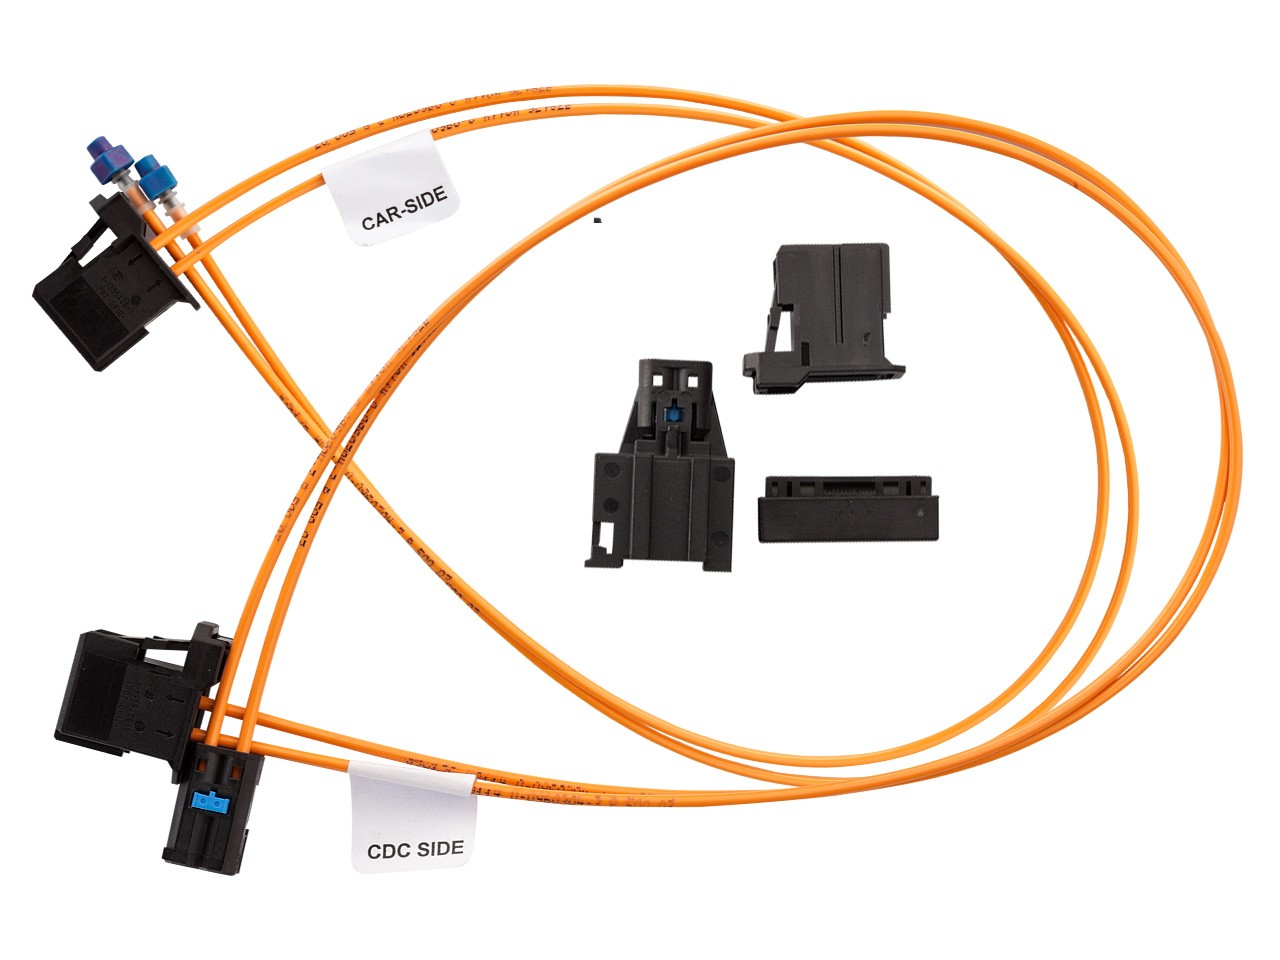 Optical Connection Kit For Gateway 500 Series Fiber Optic Wiring Diagram